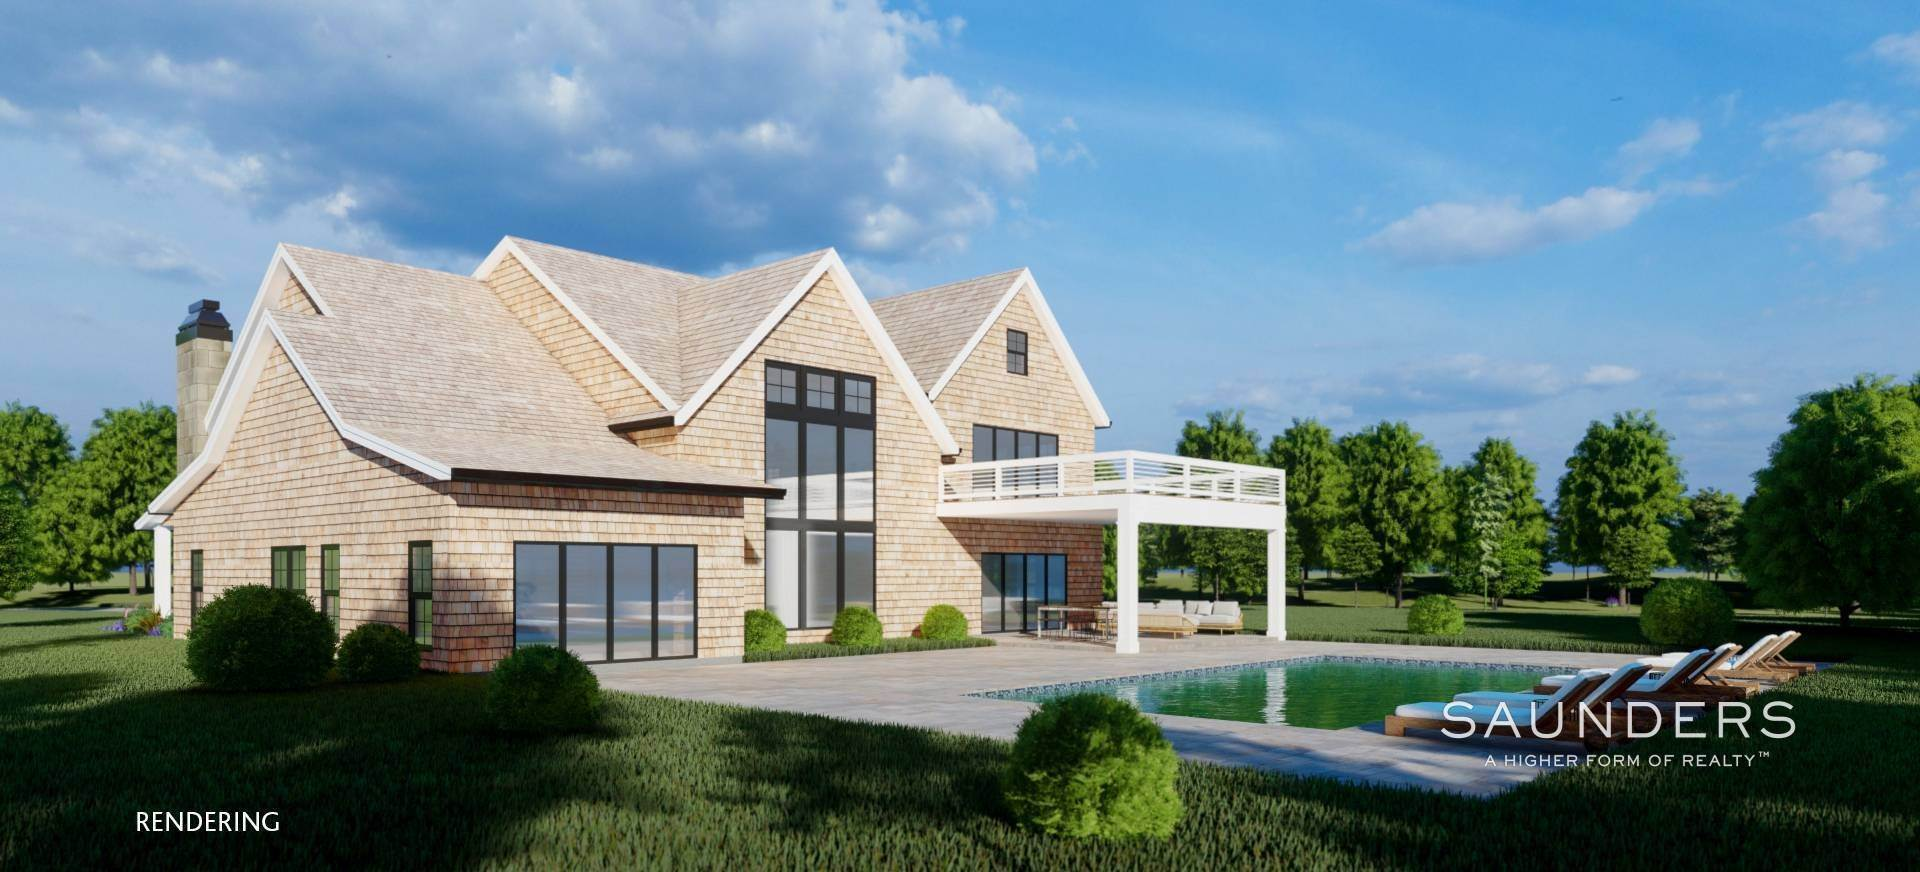 10. Single Family Homes for Sale at Sagaponack New Construction With Pool And Tennis 21 Forest Crossing, Sagaponack, Southampton Town, NY 11962